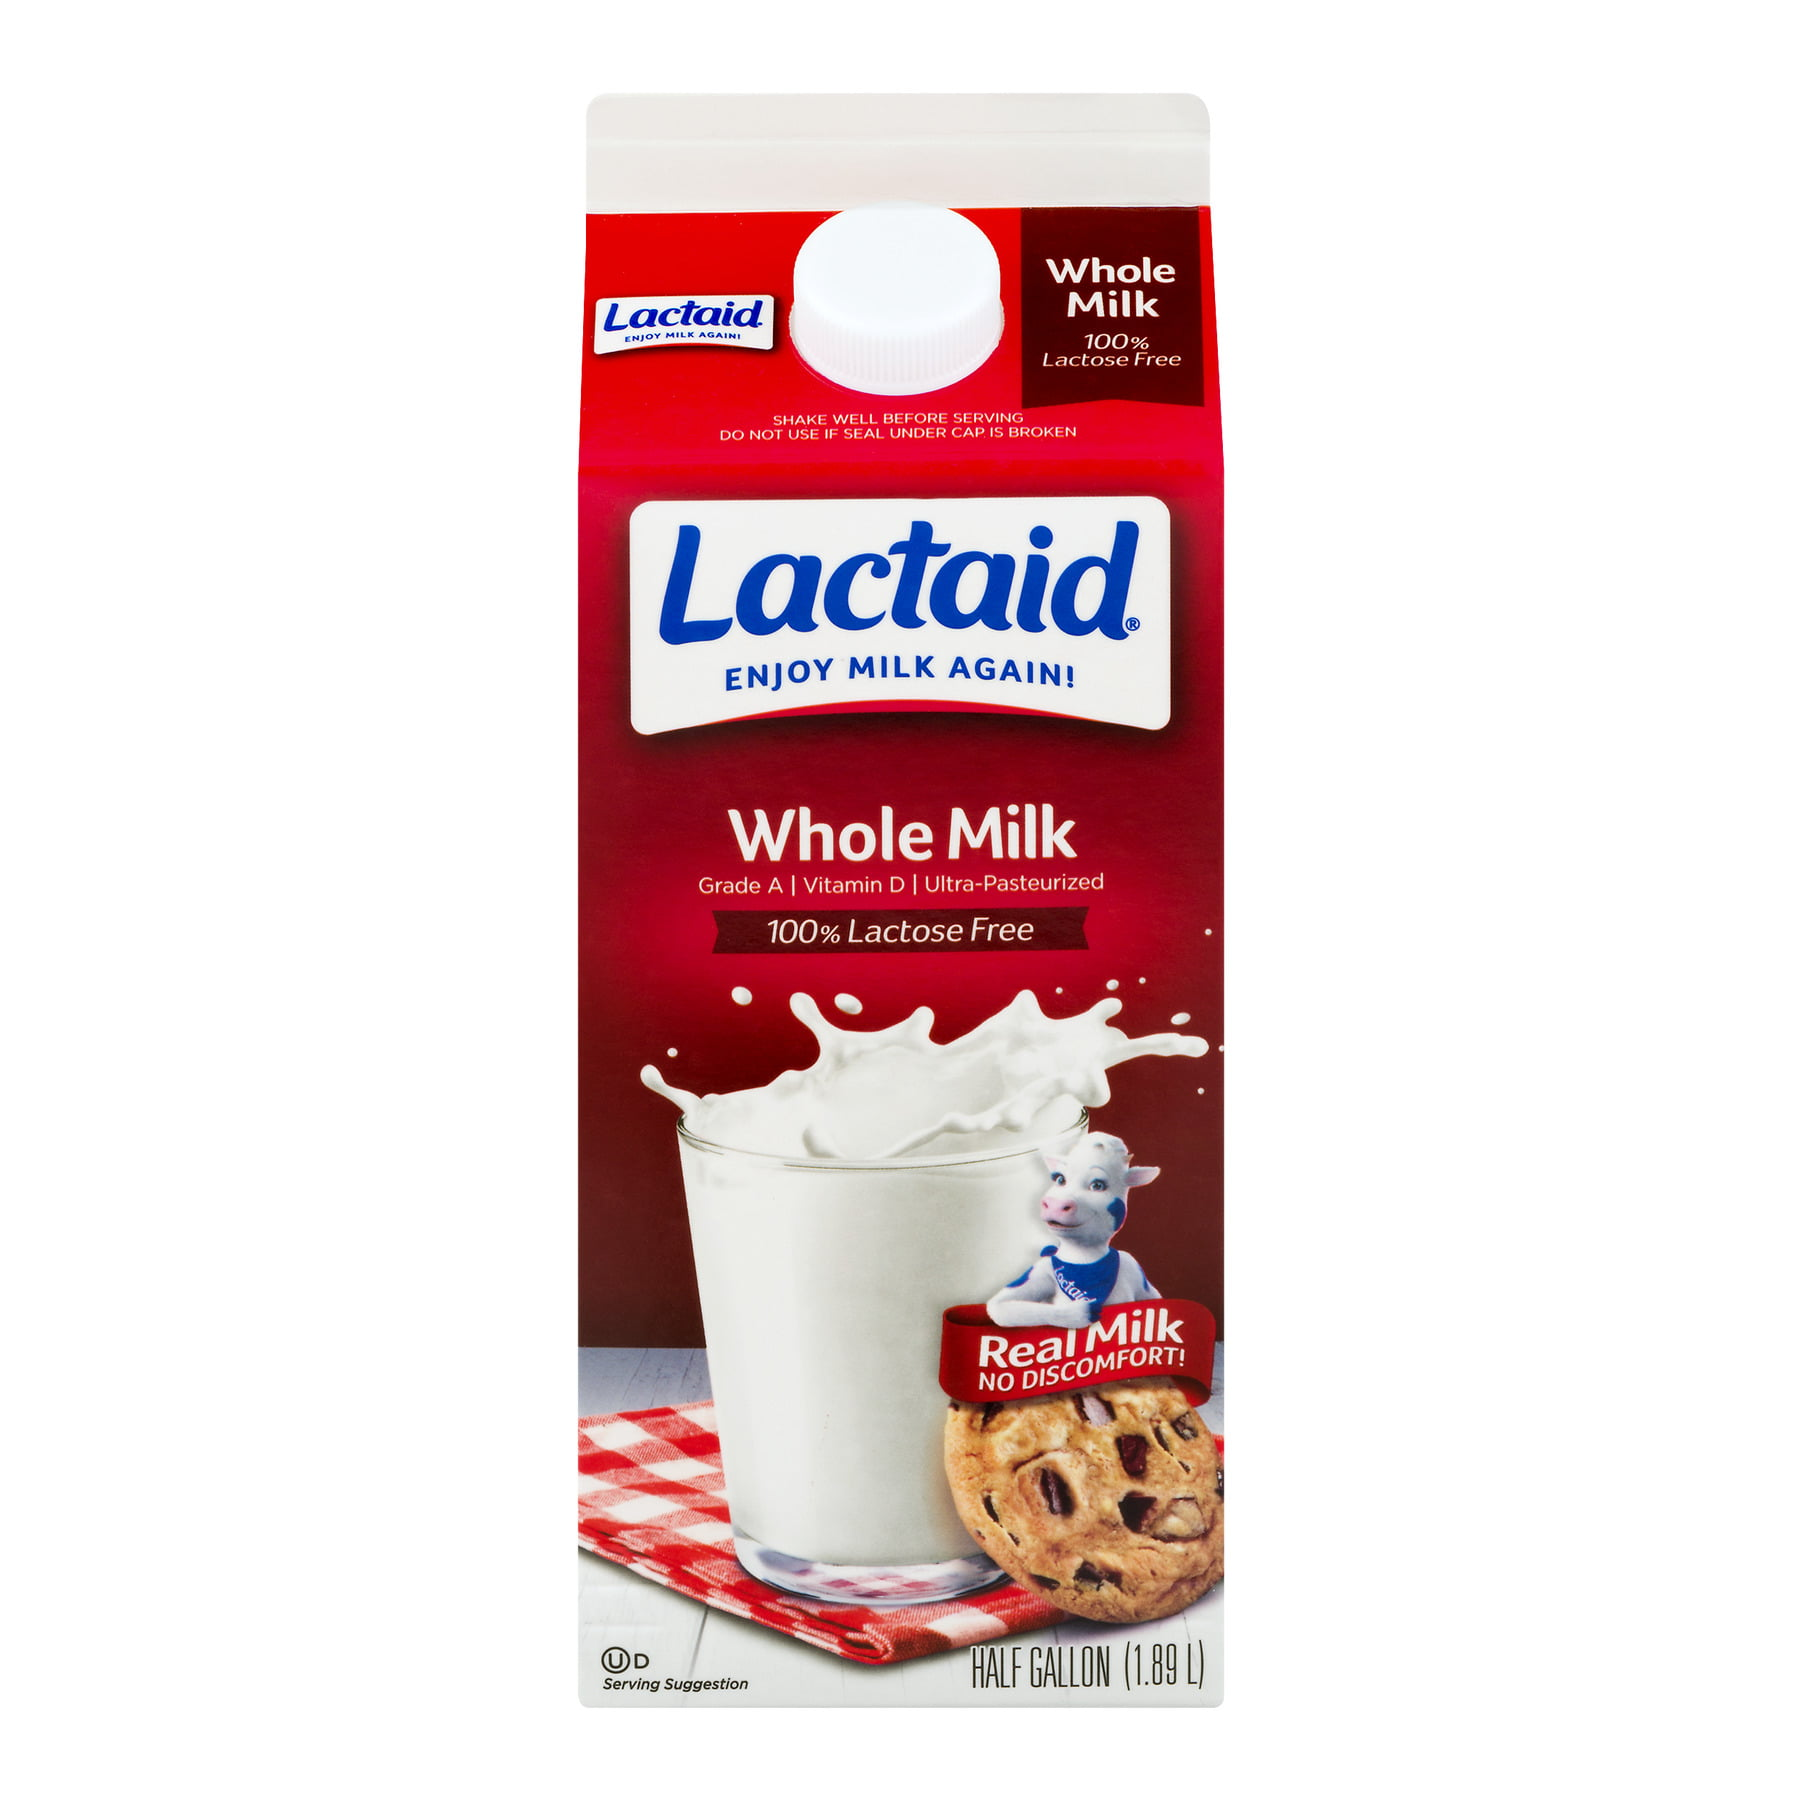 Lactaid 100 Lactose Free Whole Milk 5 Gal L Carton Walmart Com